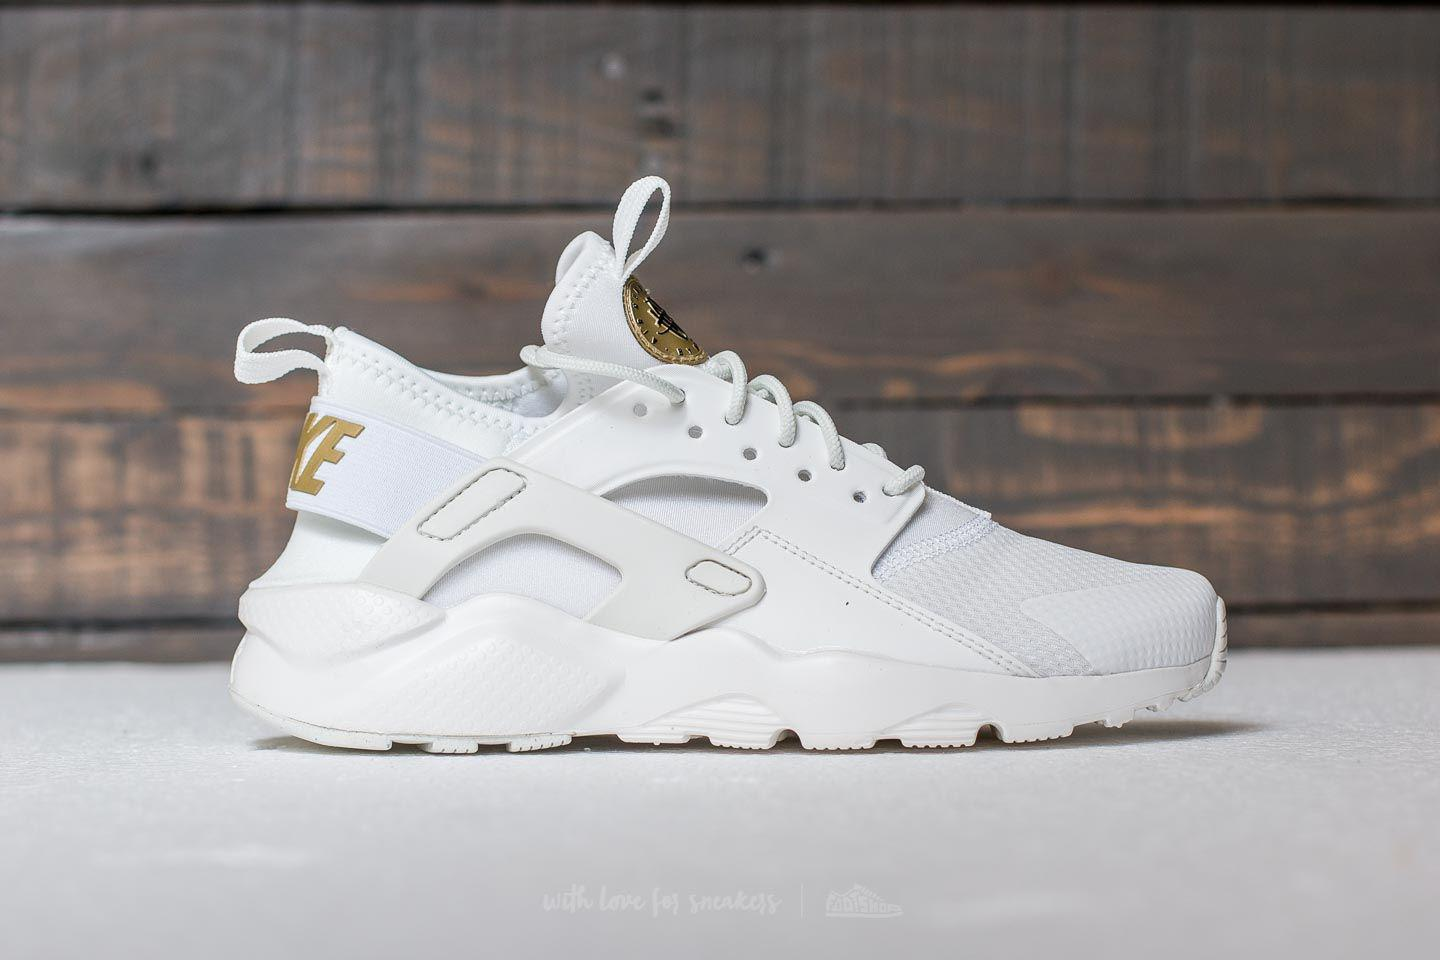 a22598e94a455 Lyst - Nike Air Huarache Run Ultra Gs Summit White  Metallic Gold in ...